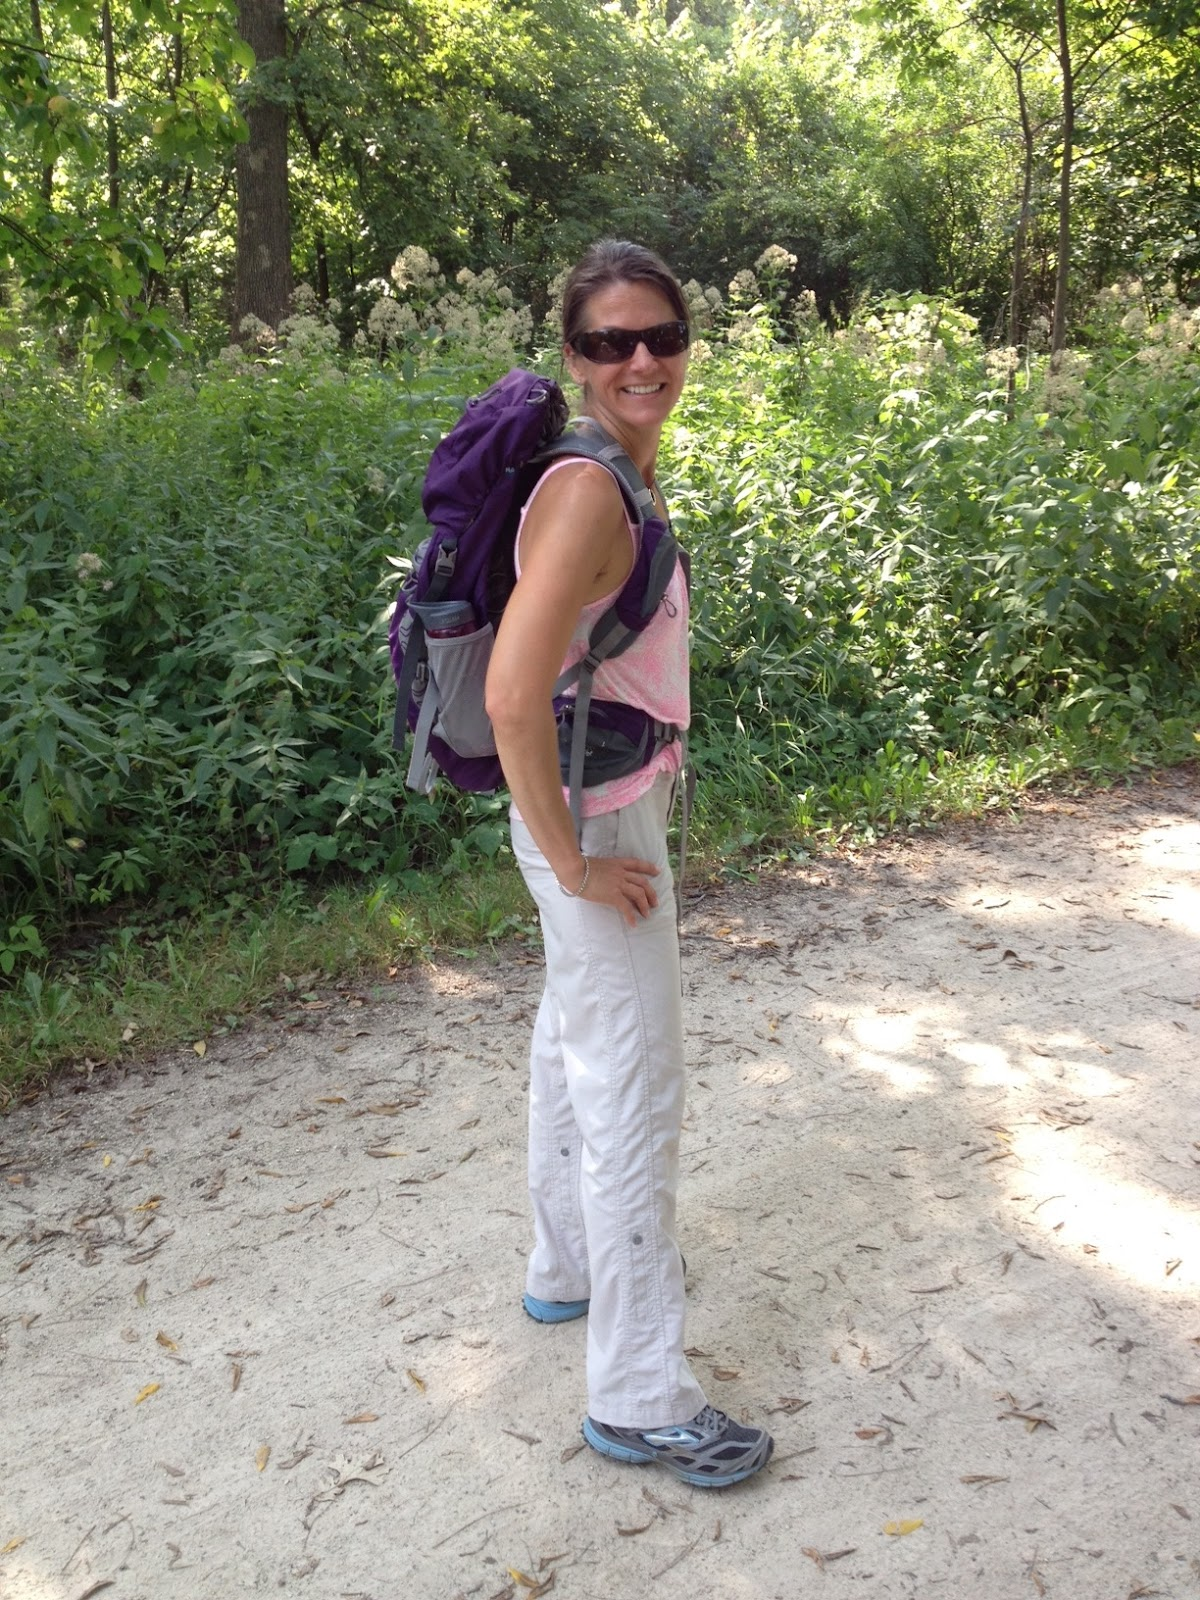 Women s Endurance Gear - A Mom Reflects on Family a77c2ea3422c6